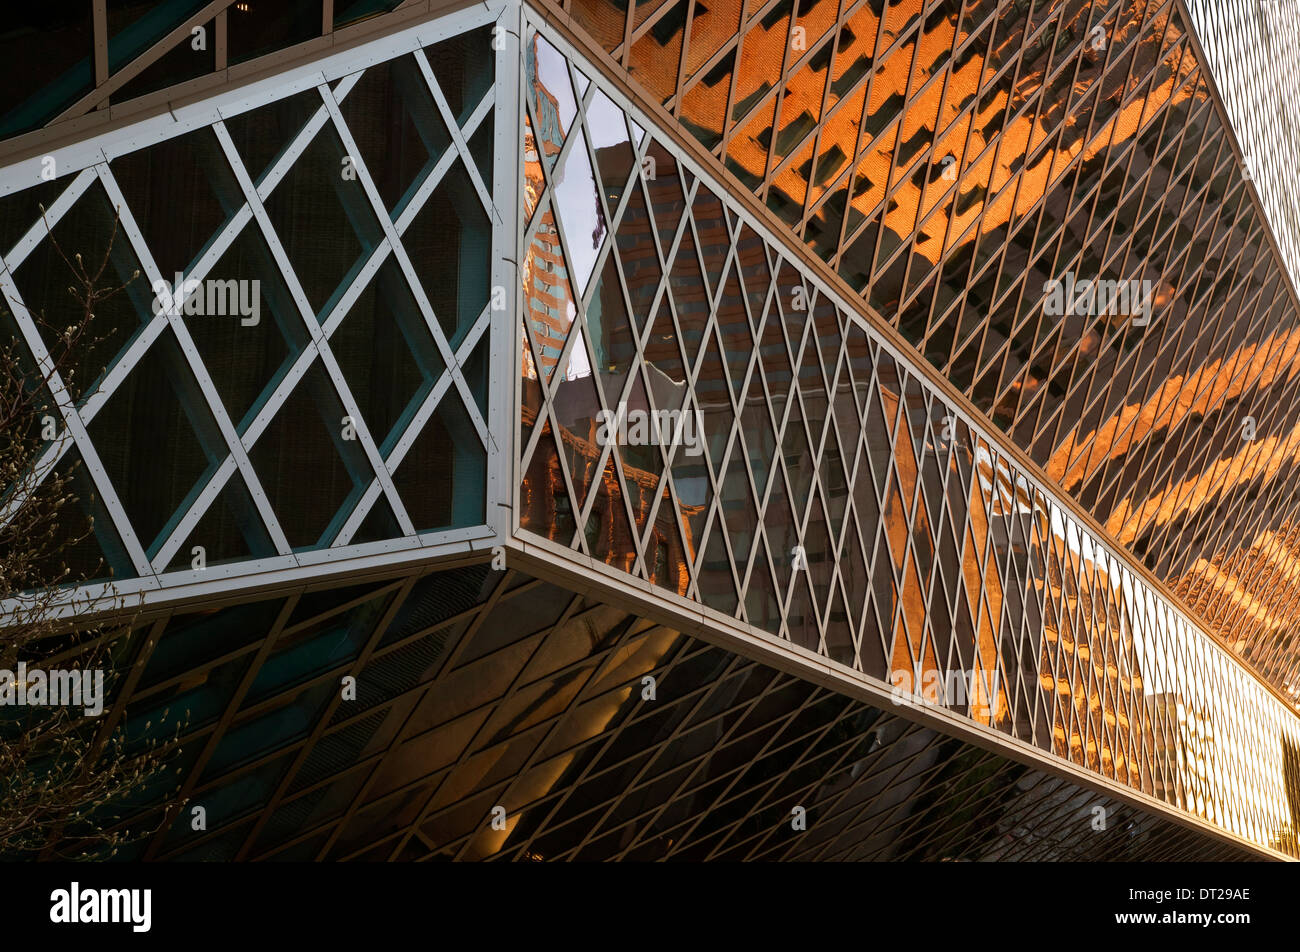 WASHINGTON - Detail view of the downtown Seattle Public Library with glass panels reflecting neighboring buildings. - Stock Image